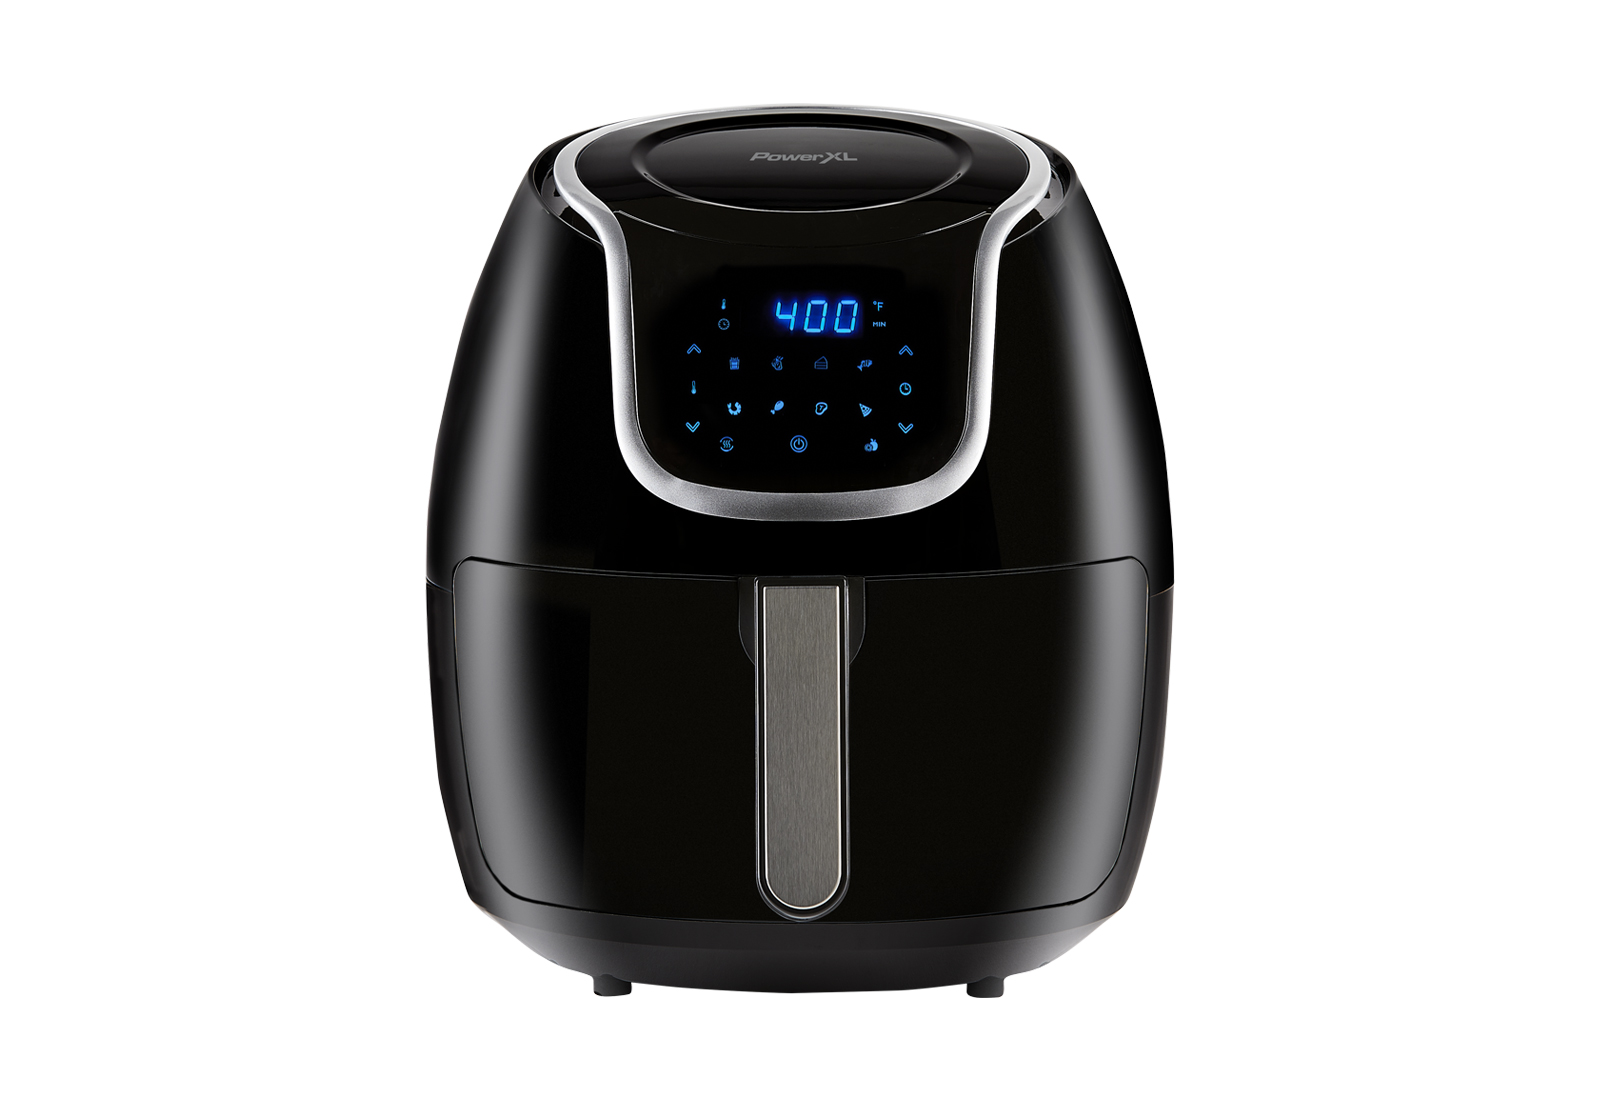 PowerXL Vortex Air Fryer Product Image